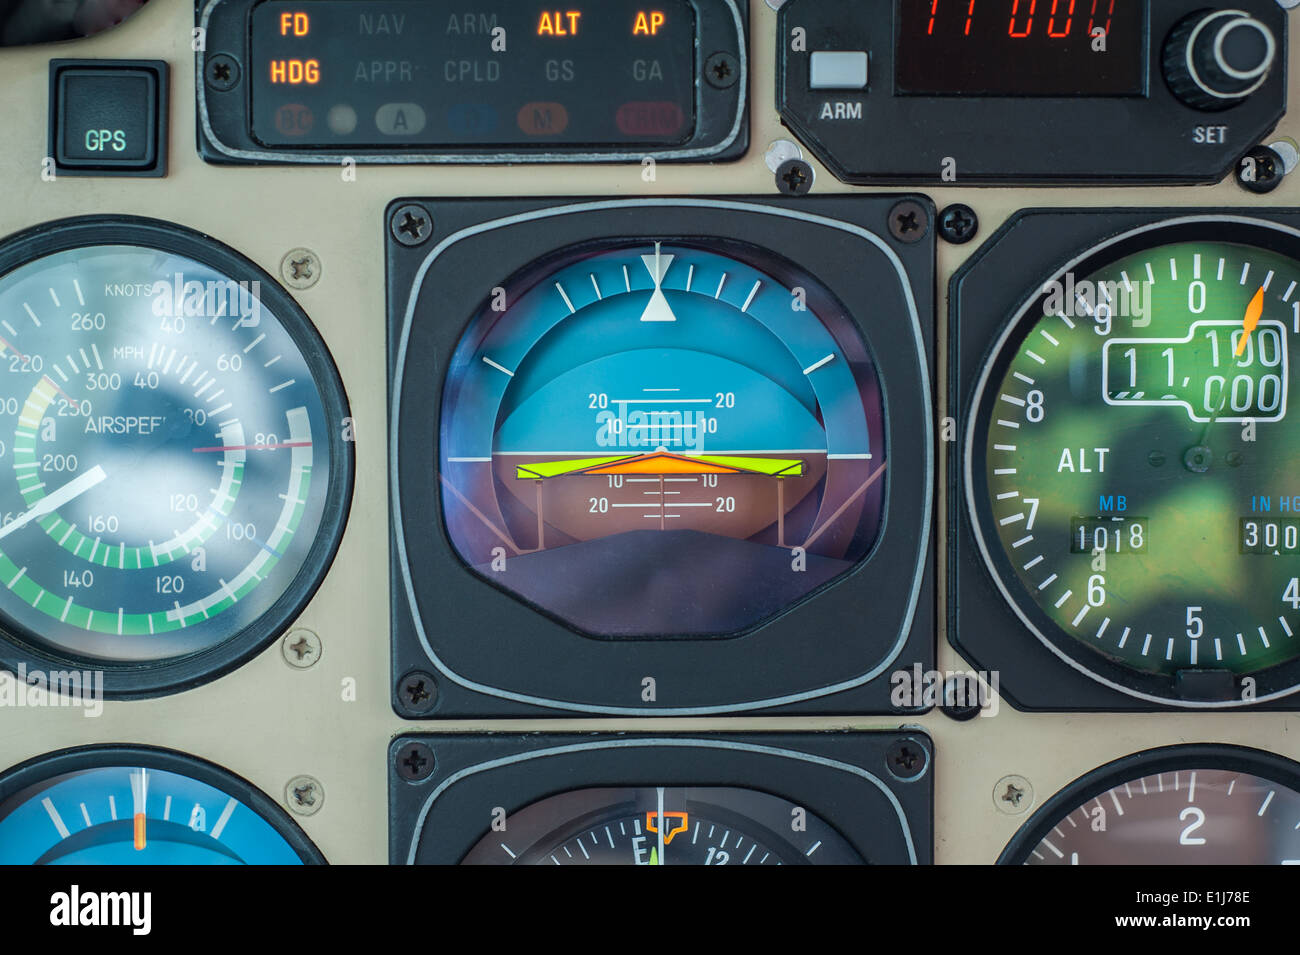 Private Aircraft Instrument Panel - all brand names and registration marks removed - Stock Image